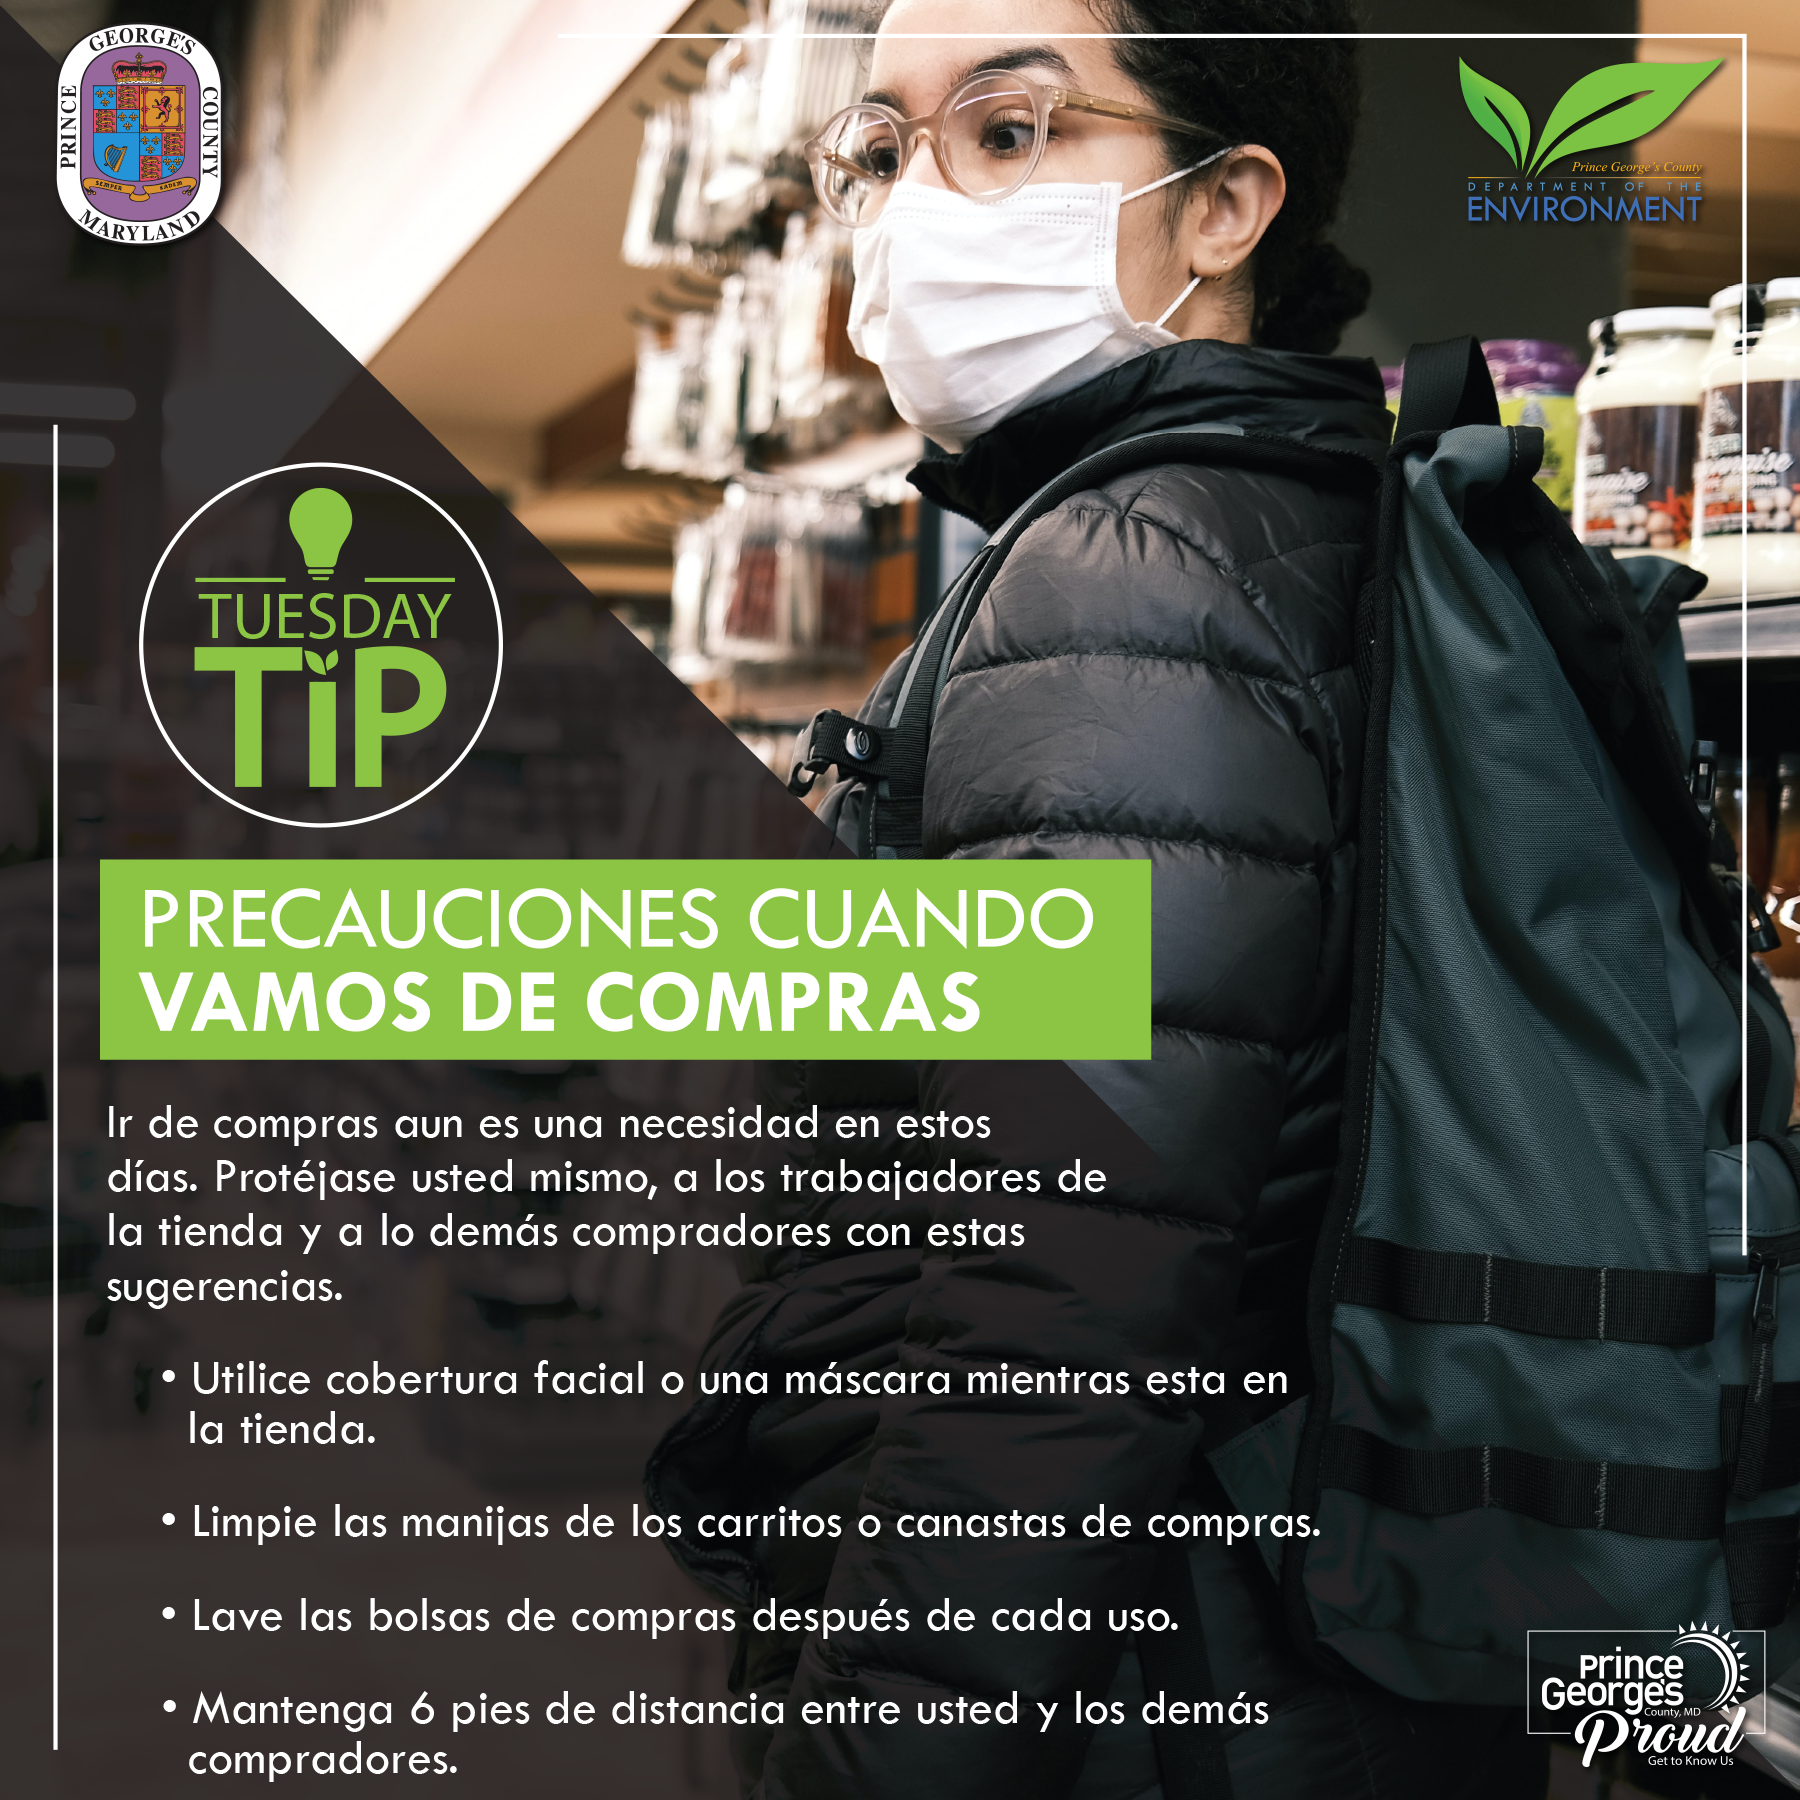 Tues tip 6.23.20 grocery precautions sp